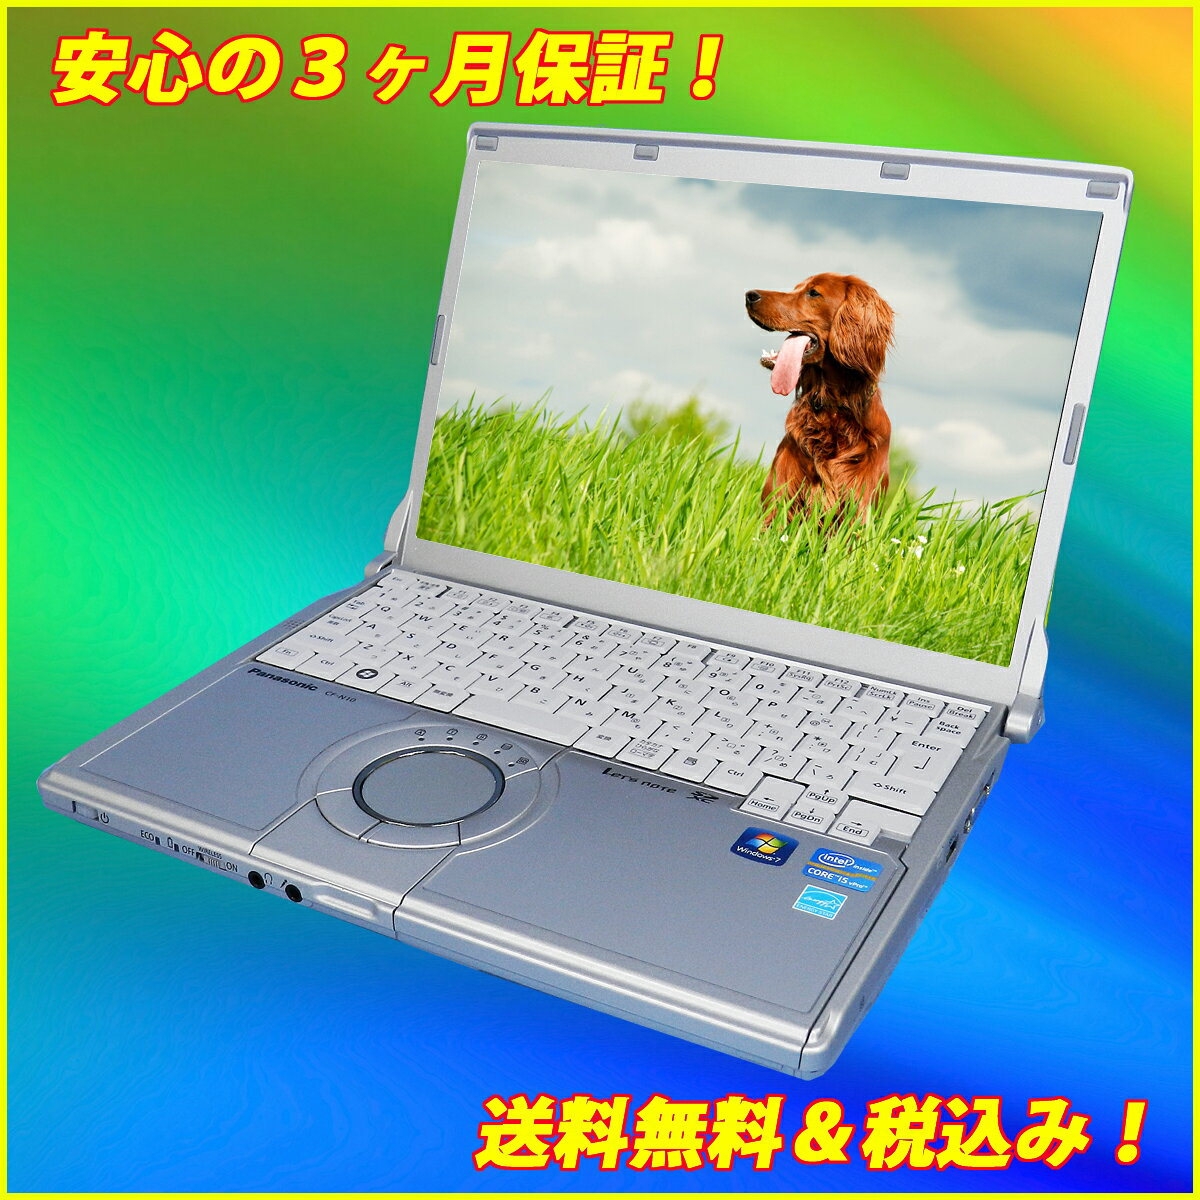 中古ノートパソコン Panasonic CF-N10 Windows10-64Bit12.1インチ液晶 Intel Core i5-2520M 2.5GHzメモリ8GB HDD320GB 無線LAN WPS Office付【中古】